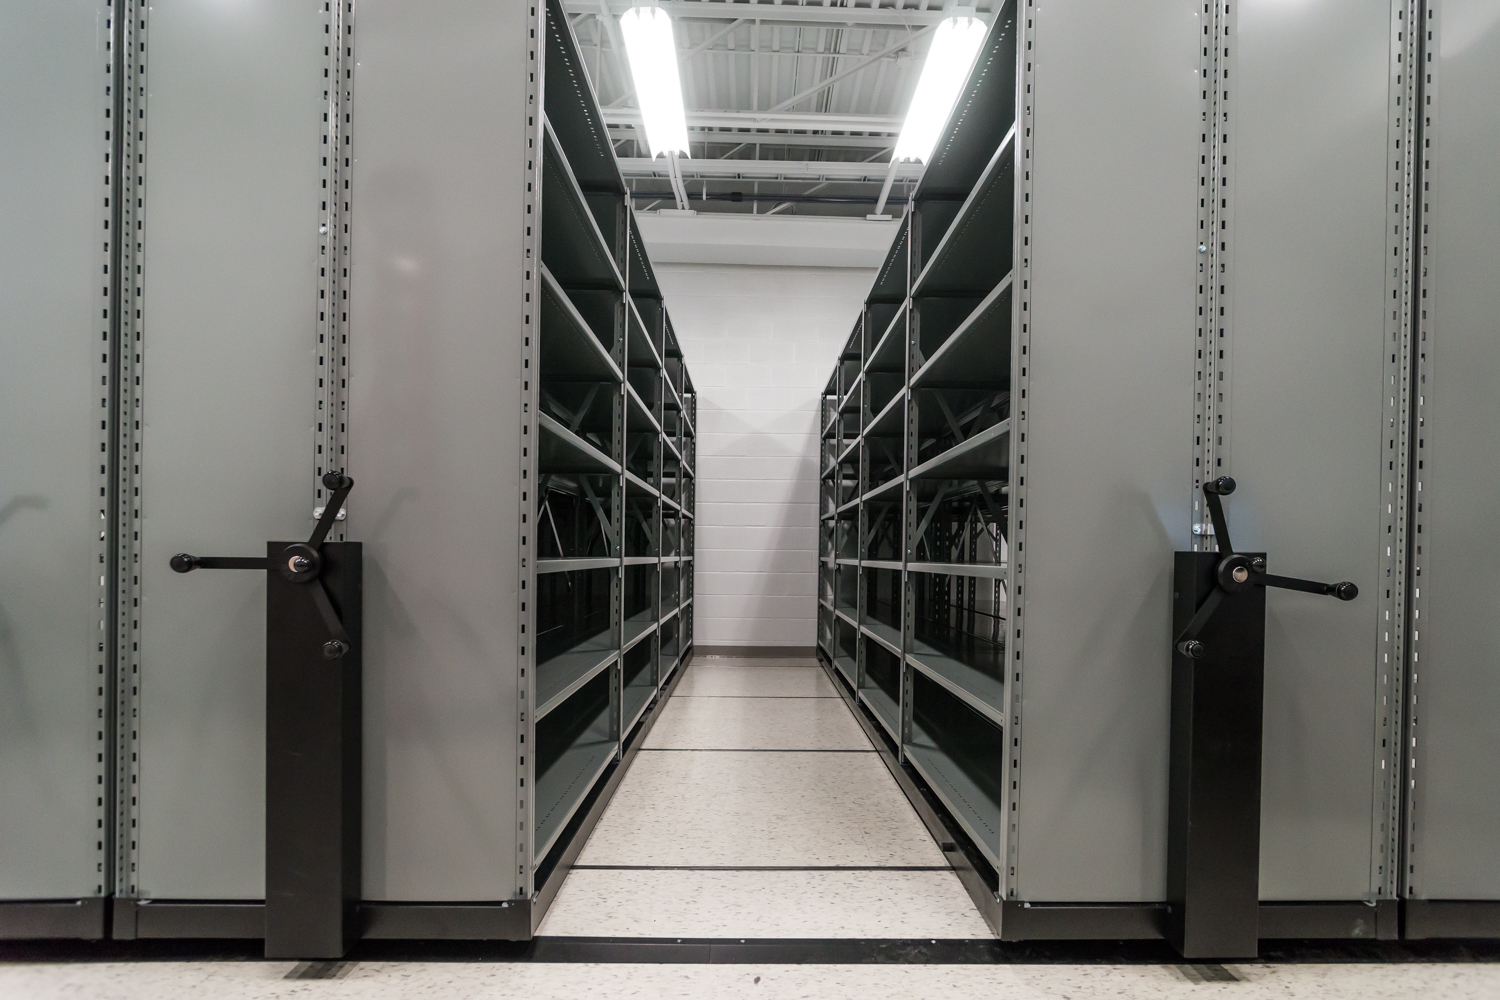 40 % space savings with mobile shelving